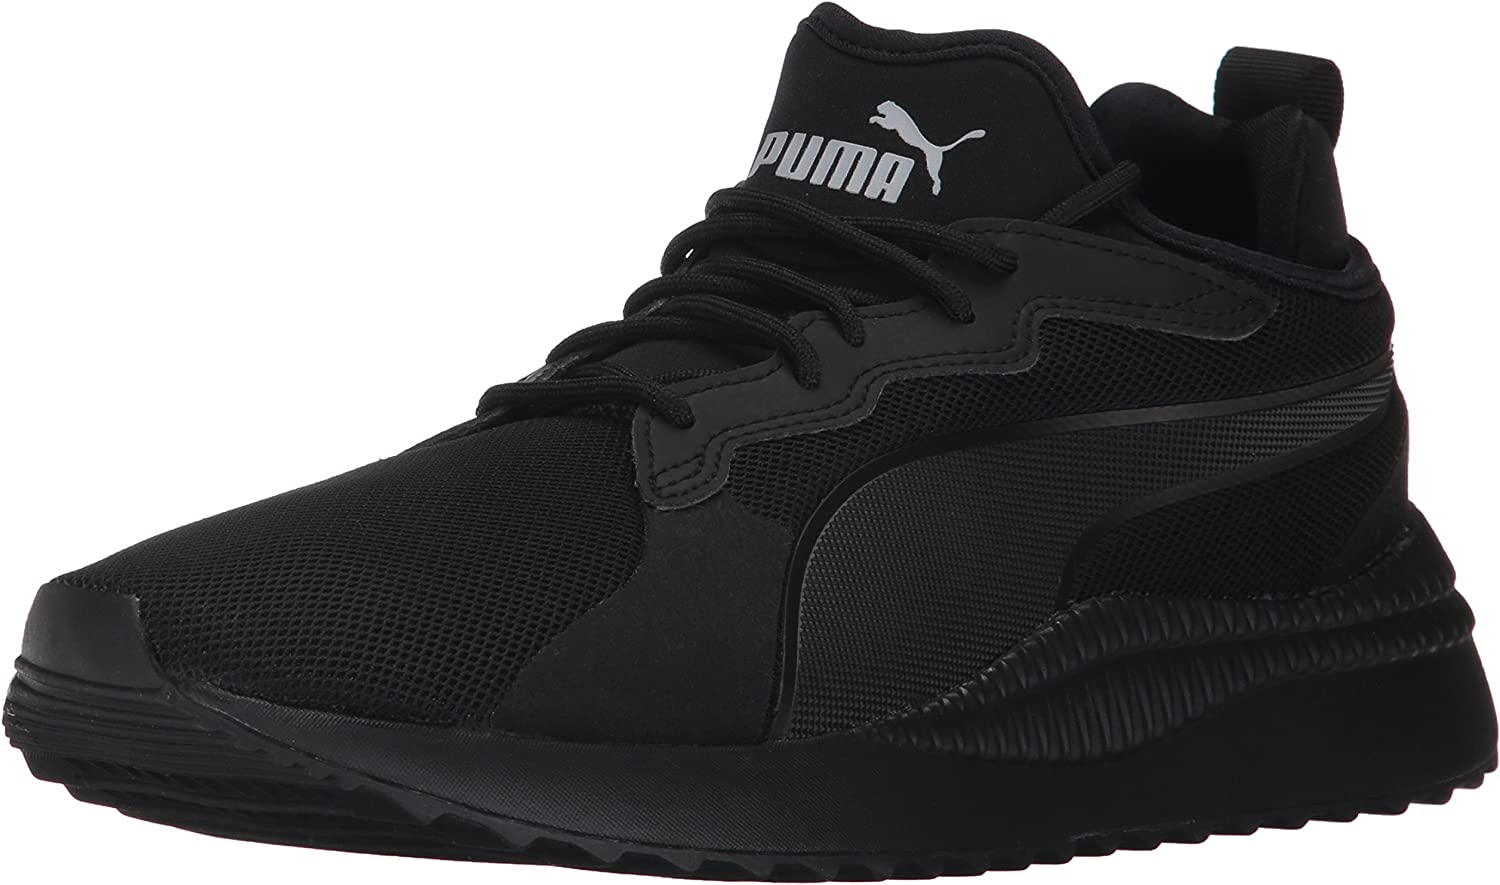 PUMA OFFicial site Unisex-Adult Max 66% OFF Pacer Sneaker Next